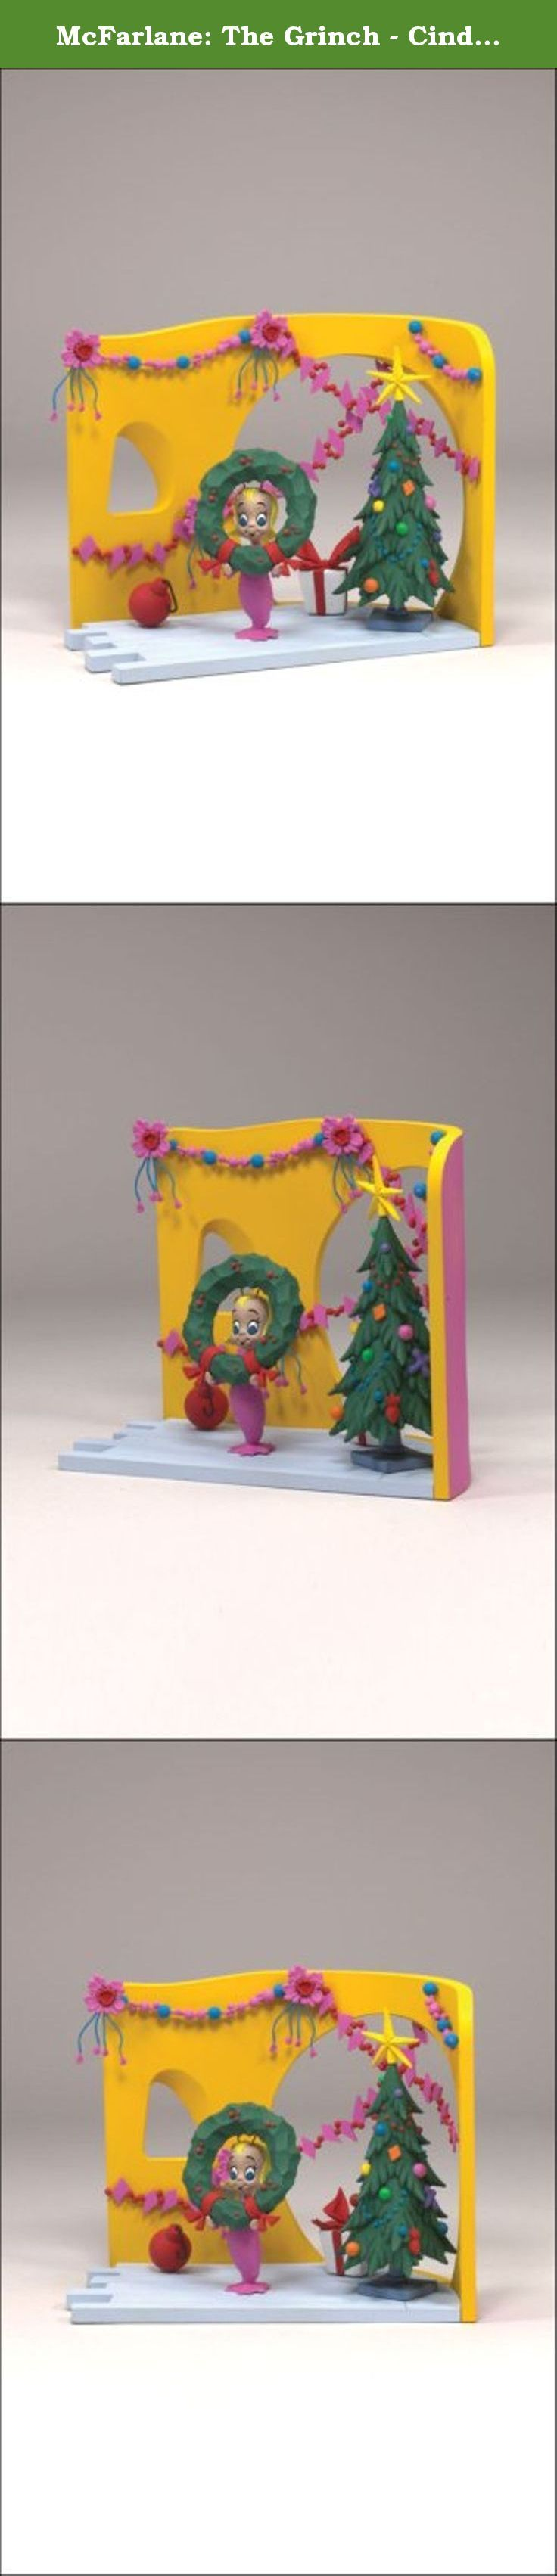 McFarlane: The Grinch - Cindy Lou Who. With this detailed figure, the grouchiest grouch there ever was gets the McFarlane touch.